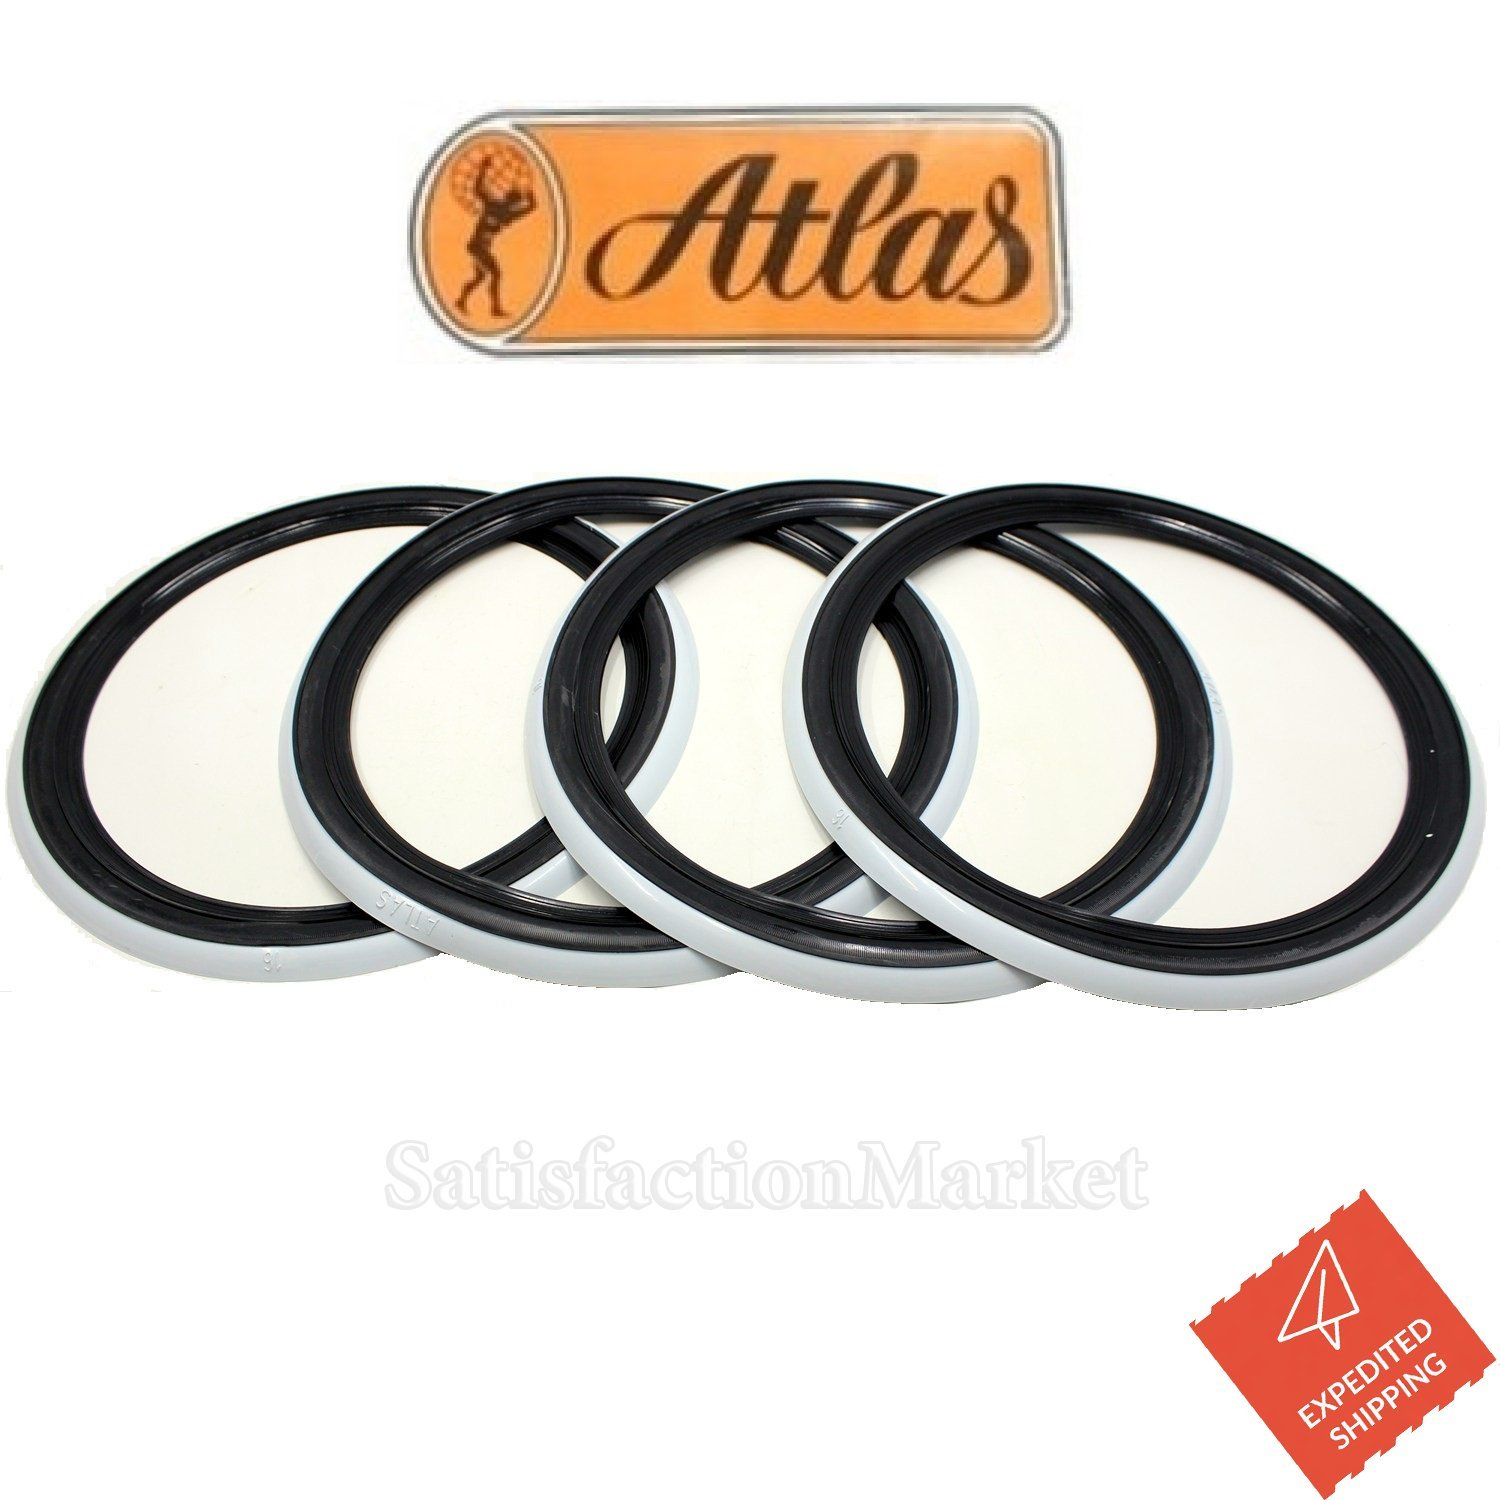 ATLAS 15' Black & White Two color, White Tire Wall Portawall Insert Trim Set 4pcs Atlas Kaucuk